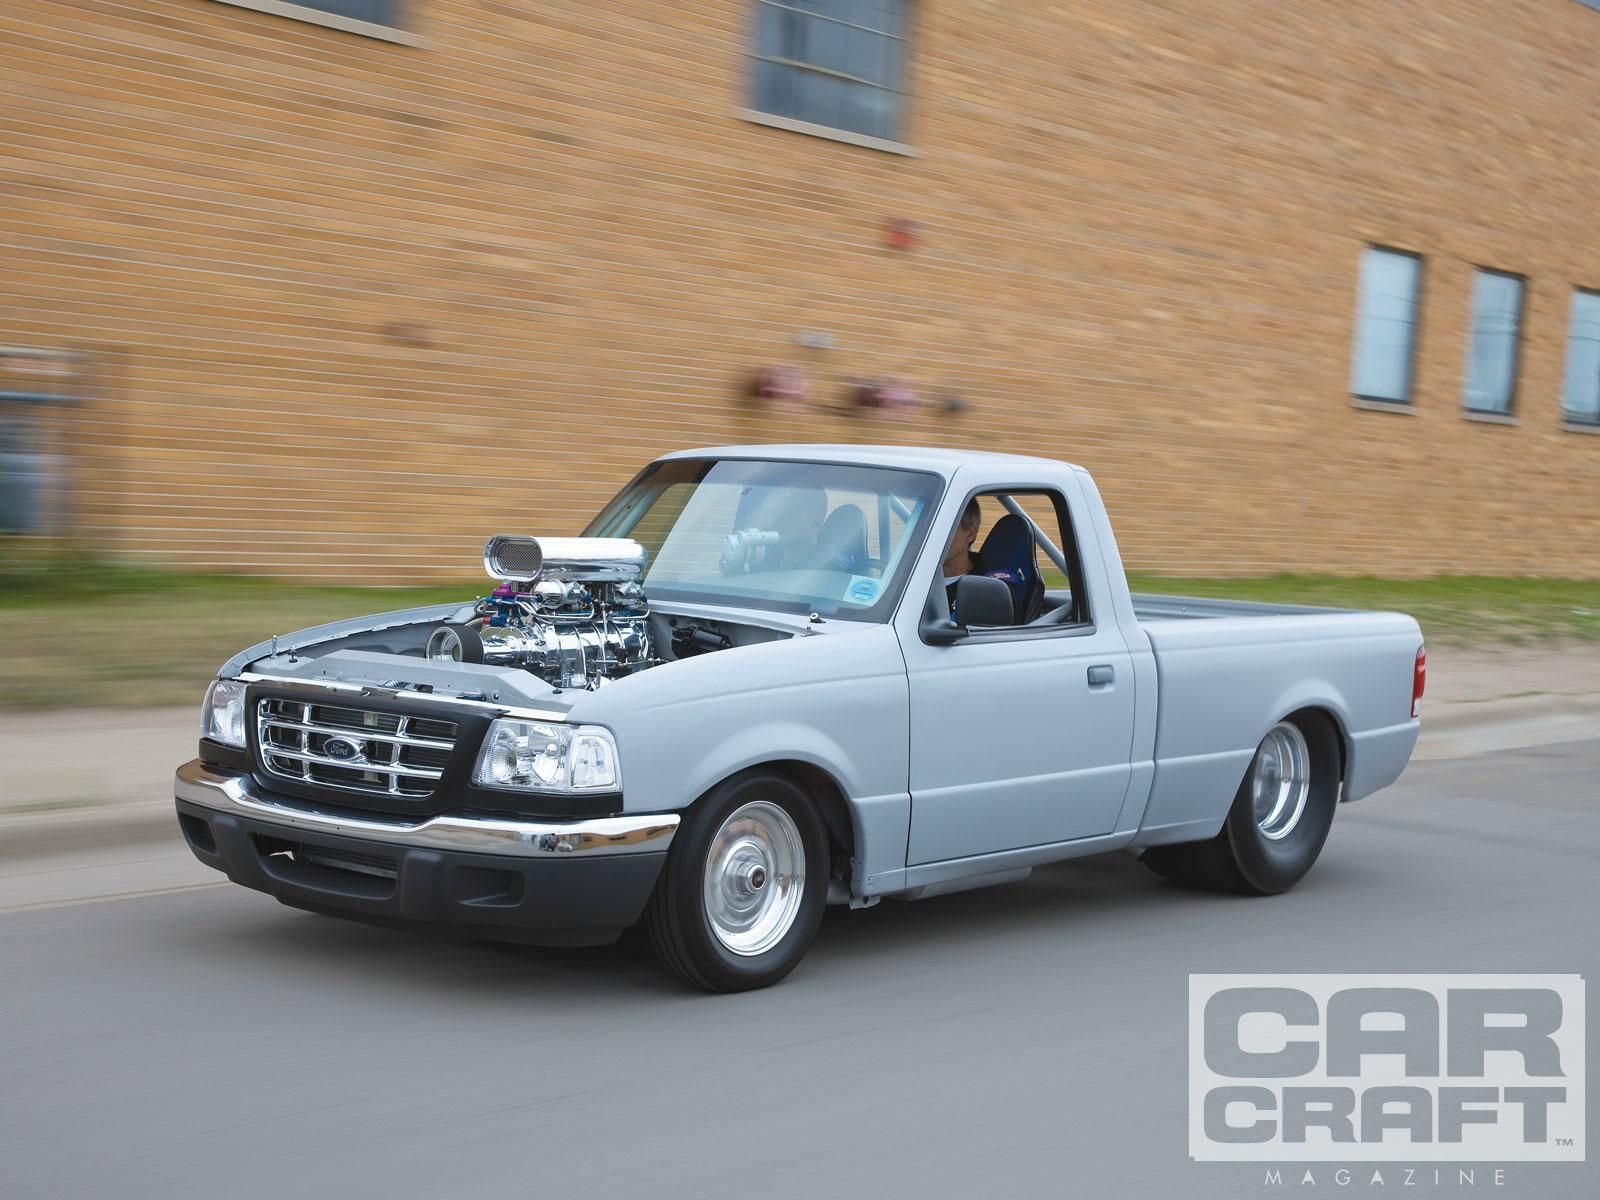 Tim sockness 1998 ford ranger with a supercharged 351w punched to 383 ci c4 auto